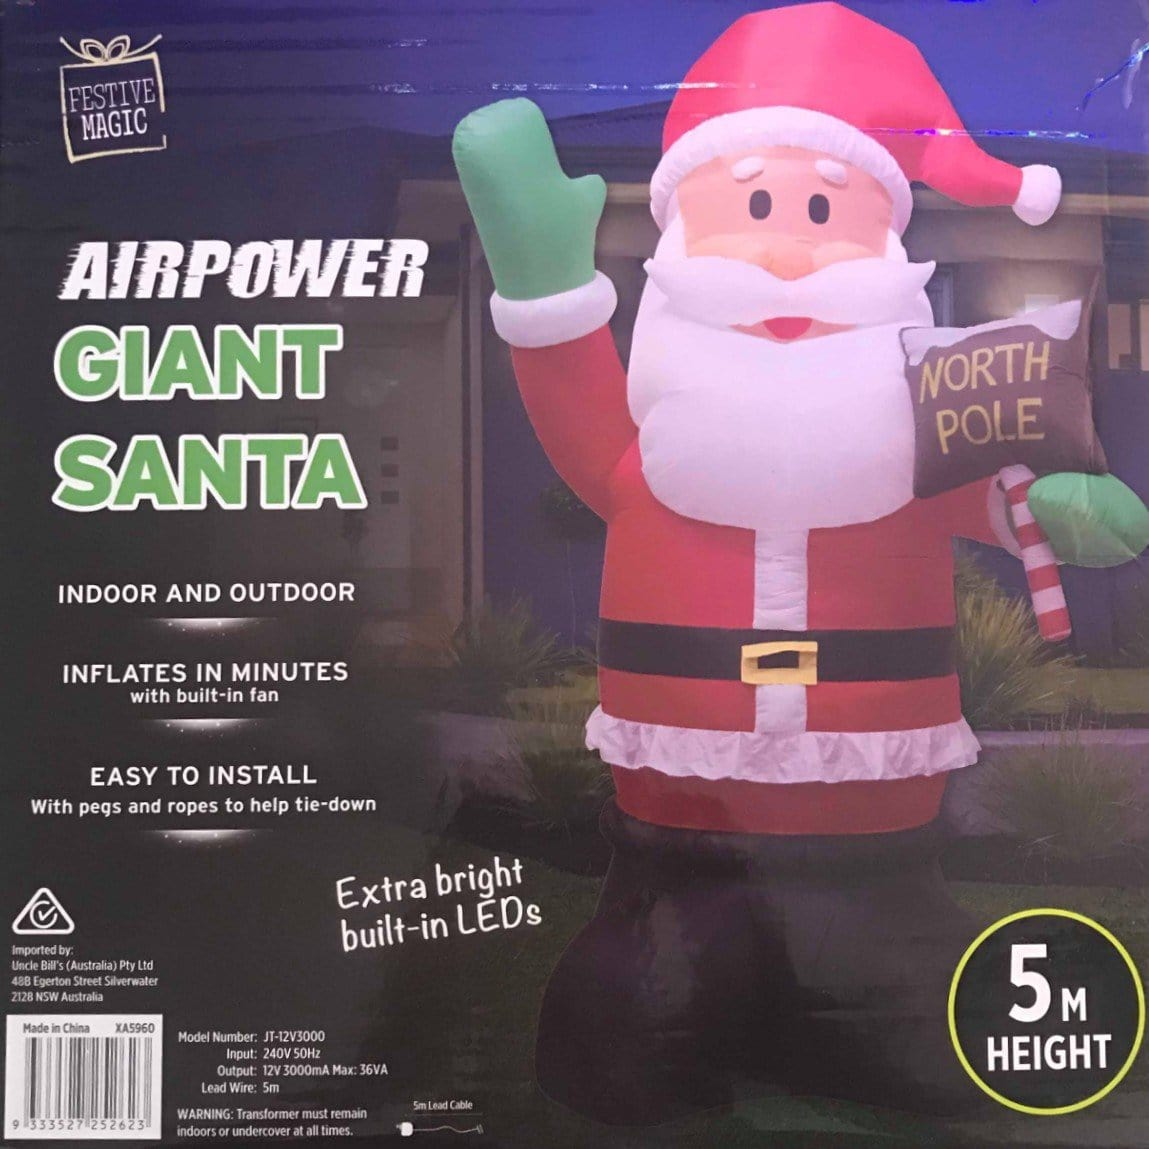 A/POWER GIANT SANTA 5m NTHPOLE